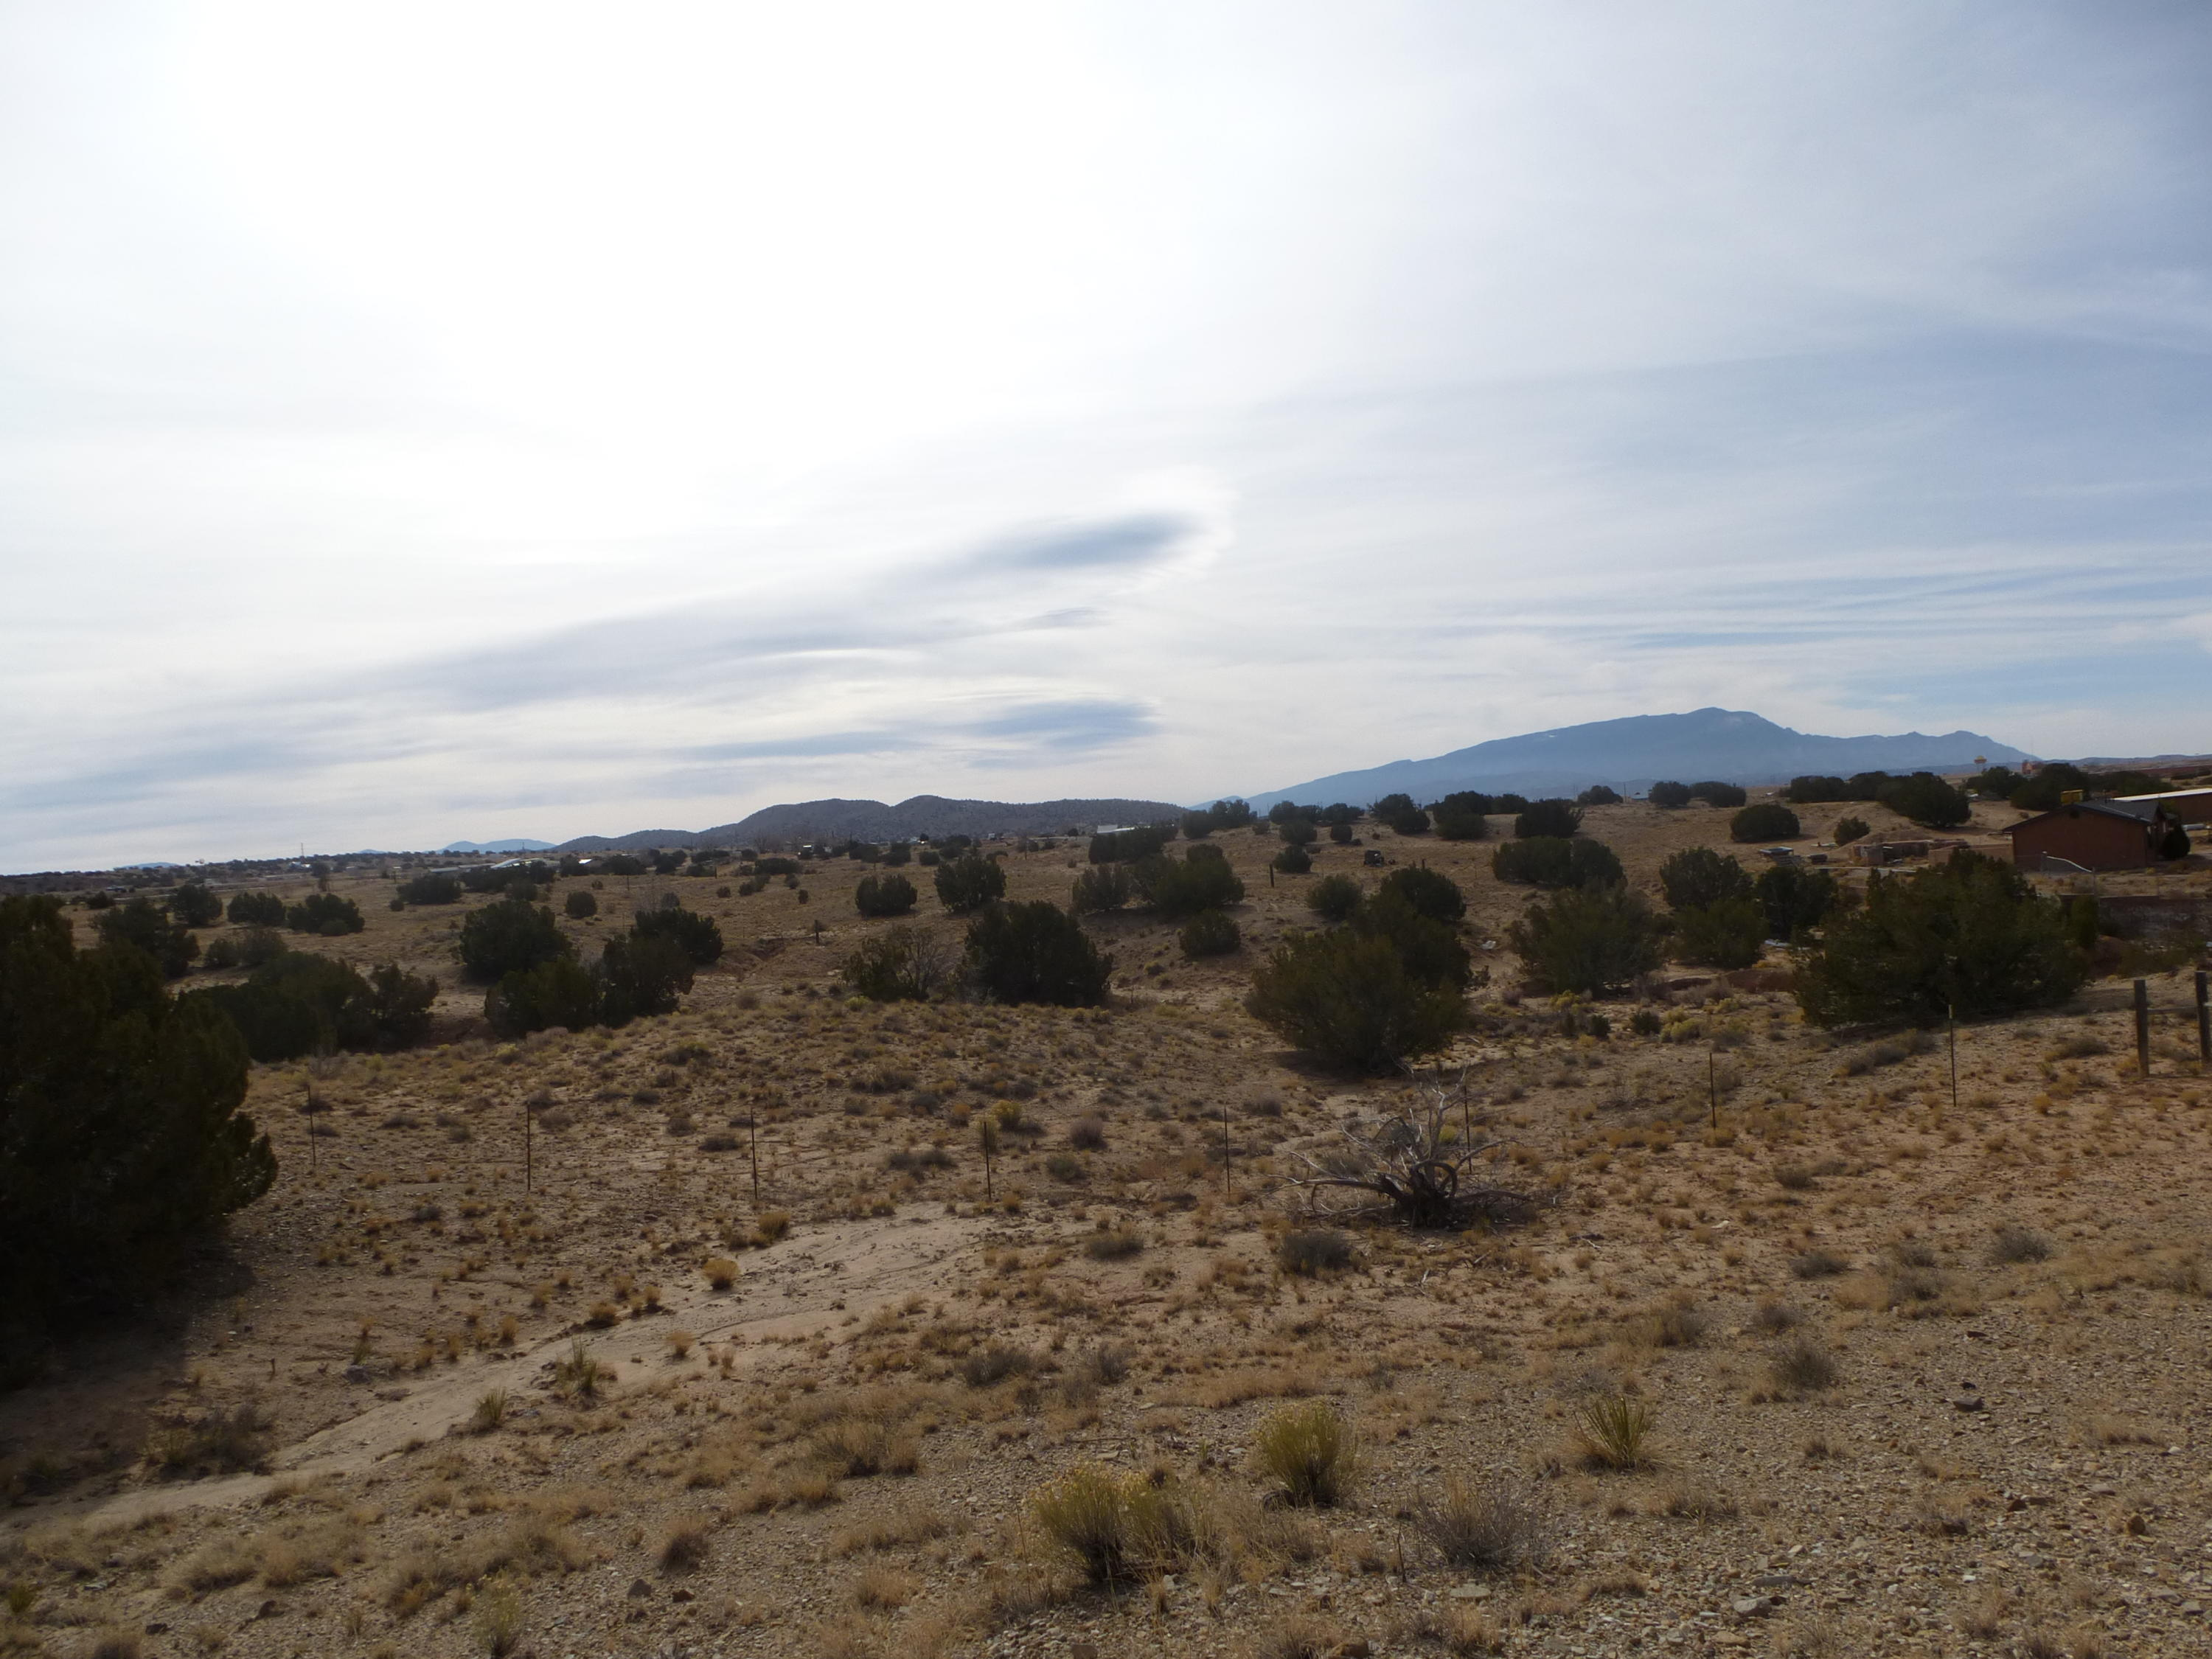 CAMINO DE DELORES Property Photo - Budaghers, NM real estate listing